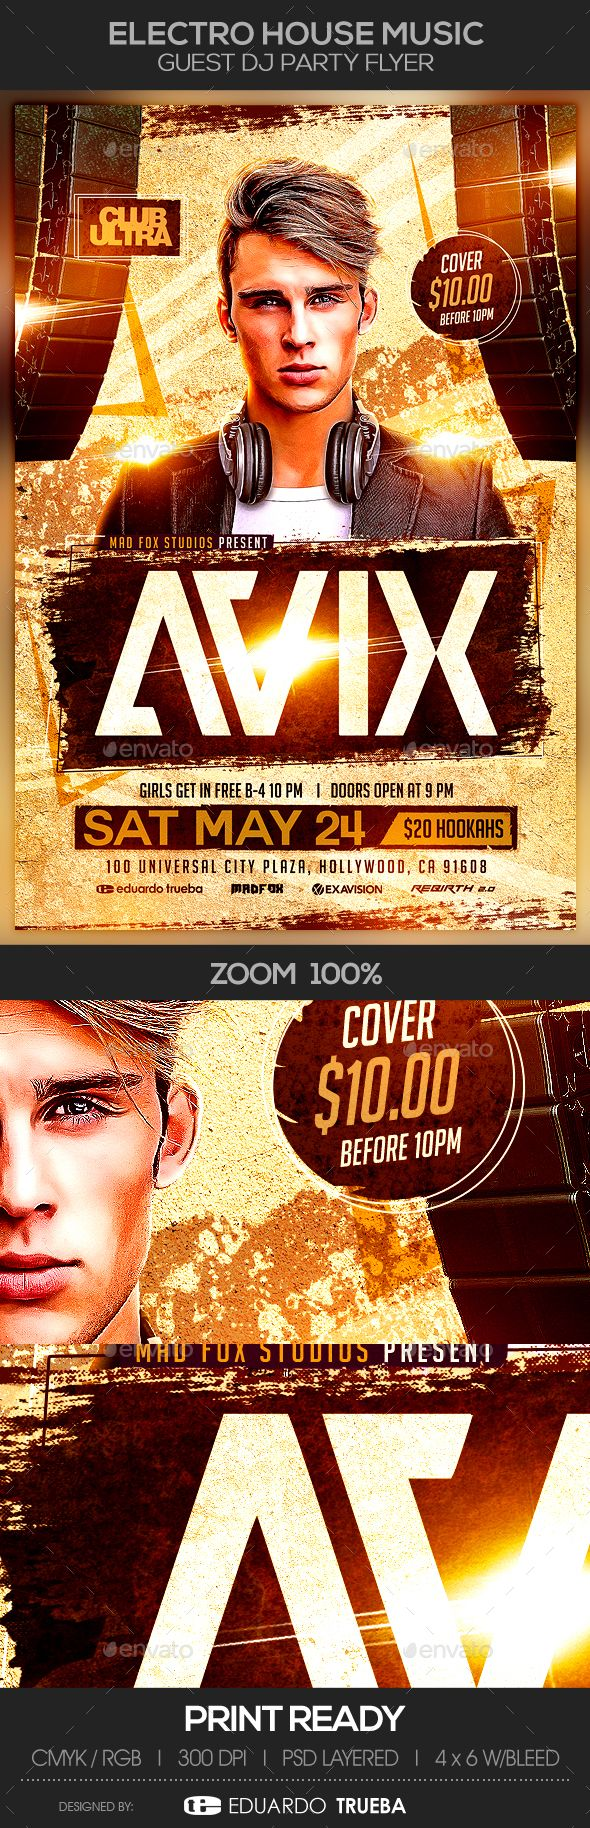 Electro House Music Guest Dj Party Flyer Party Flyer Electro House Music Dj Party